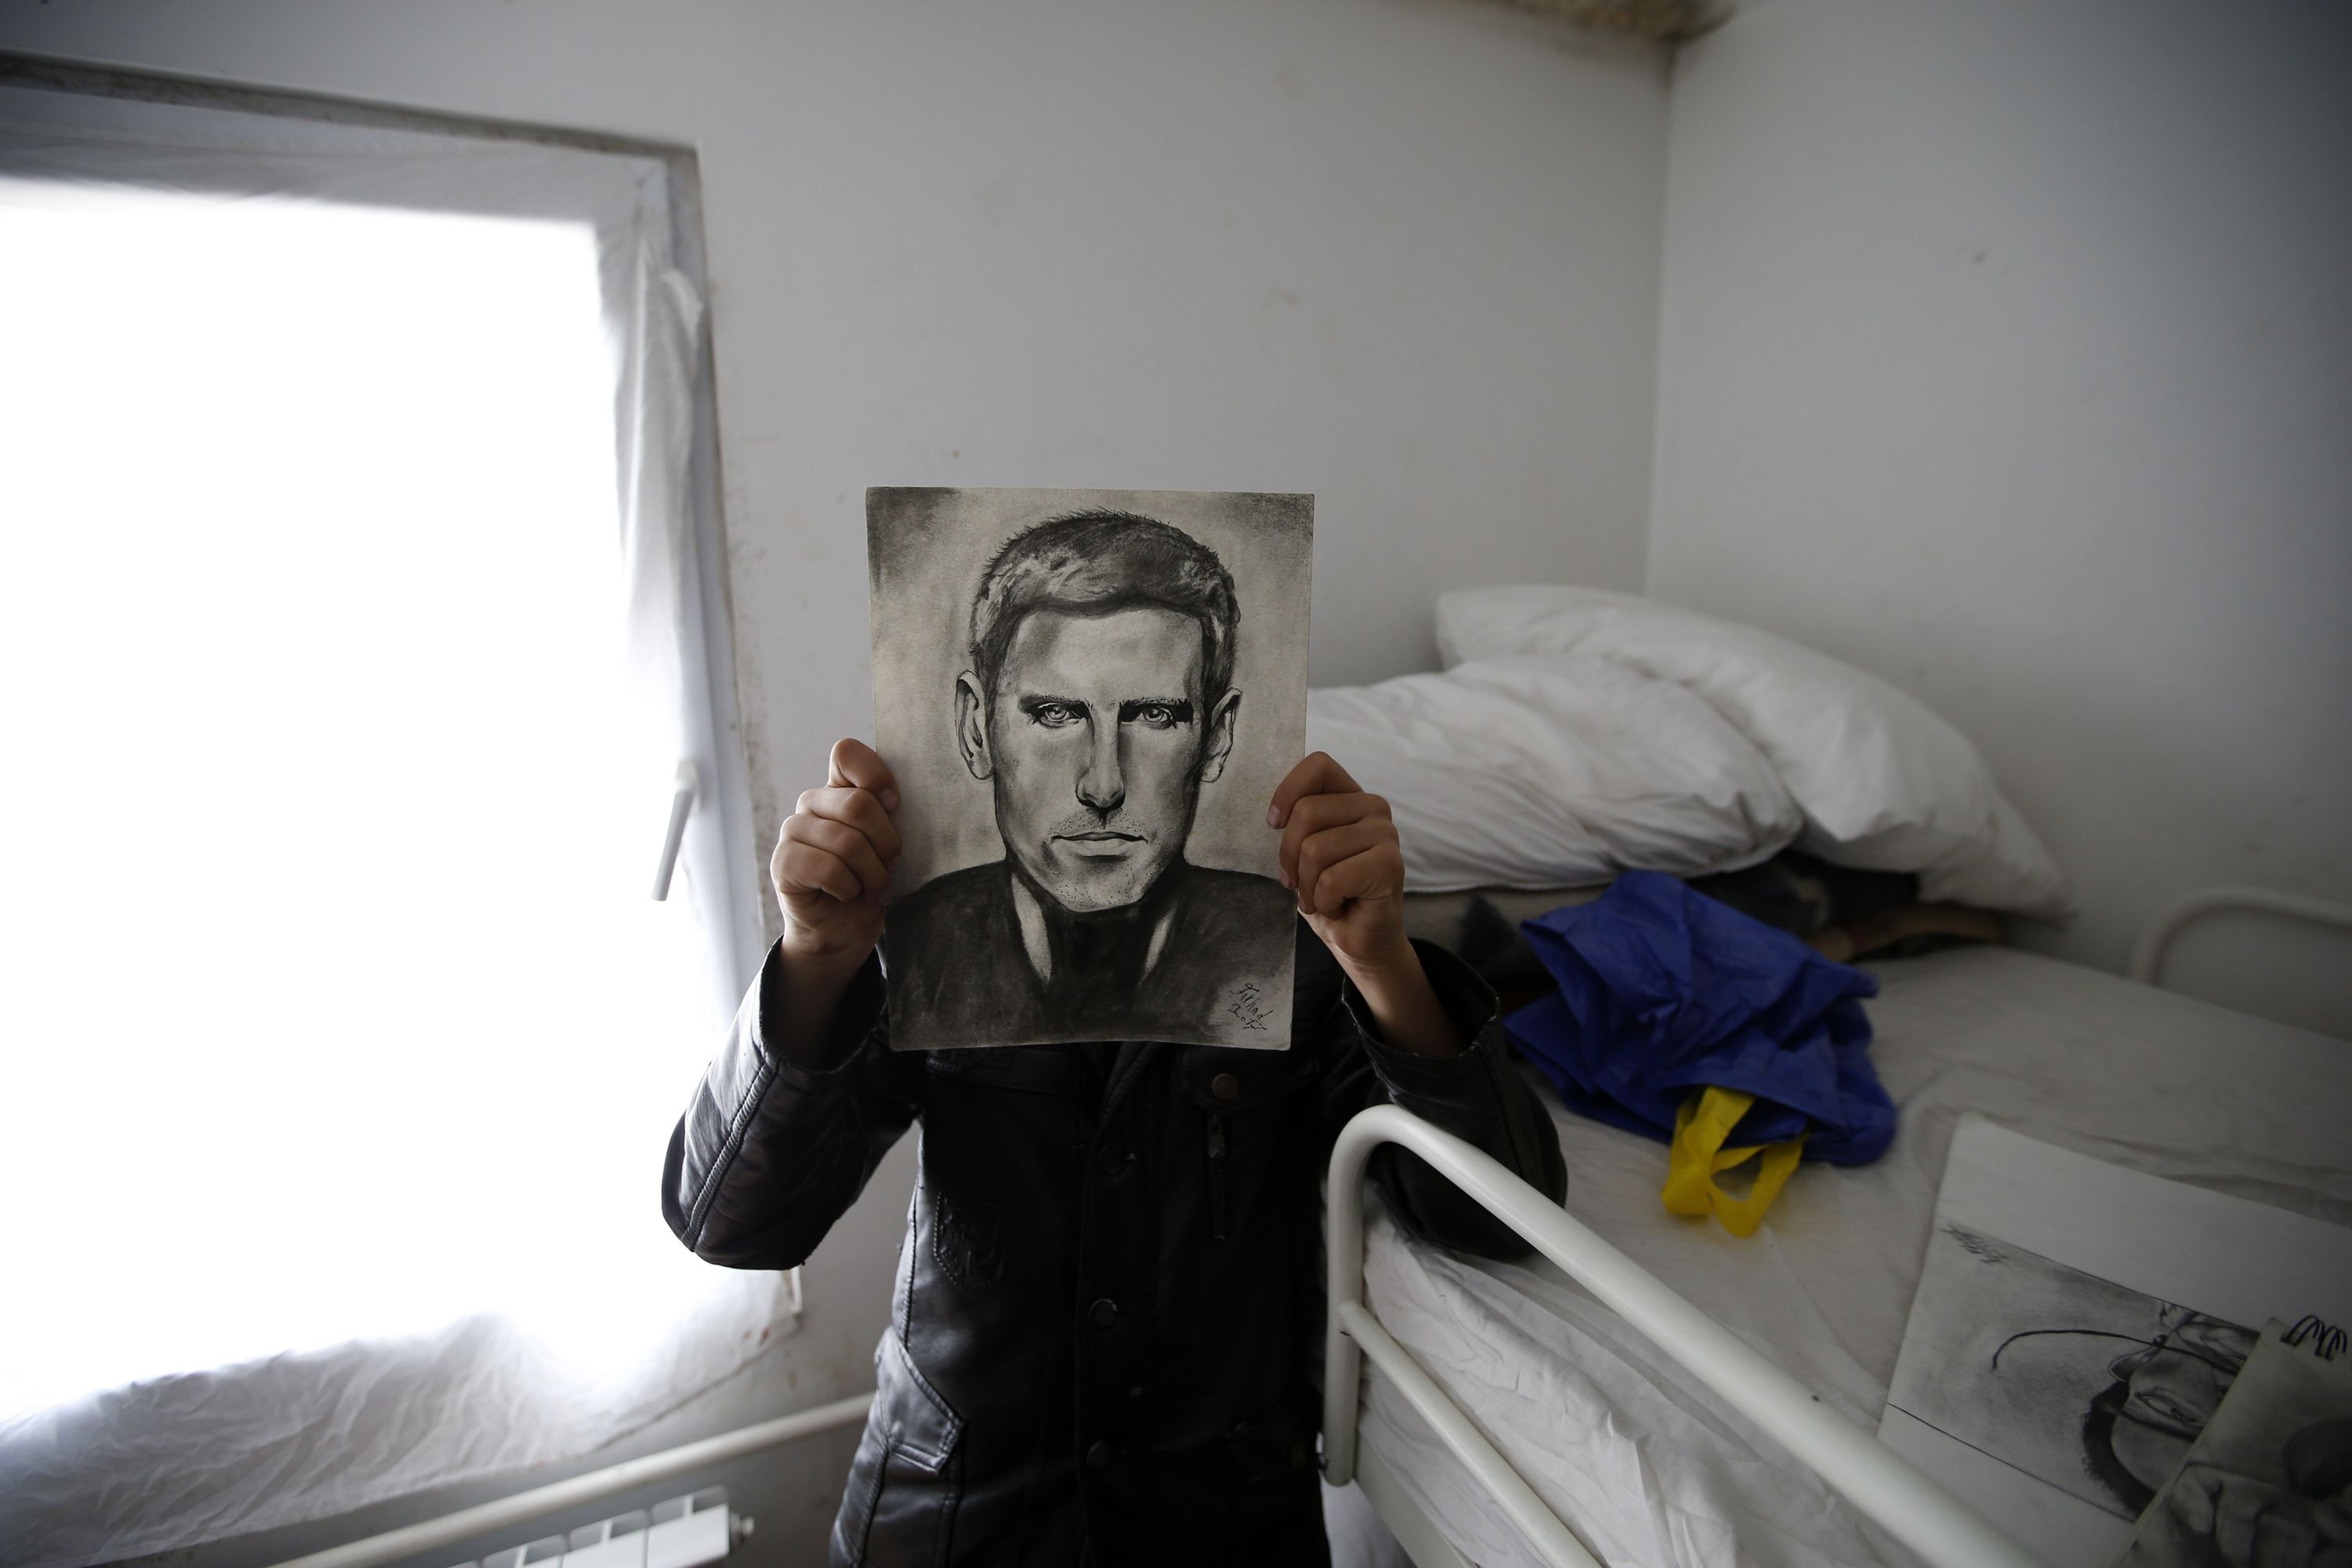 Young refugee's portraits earn him nickname of 'Little Picasso'